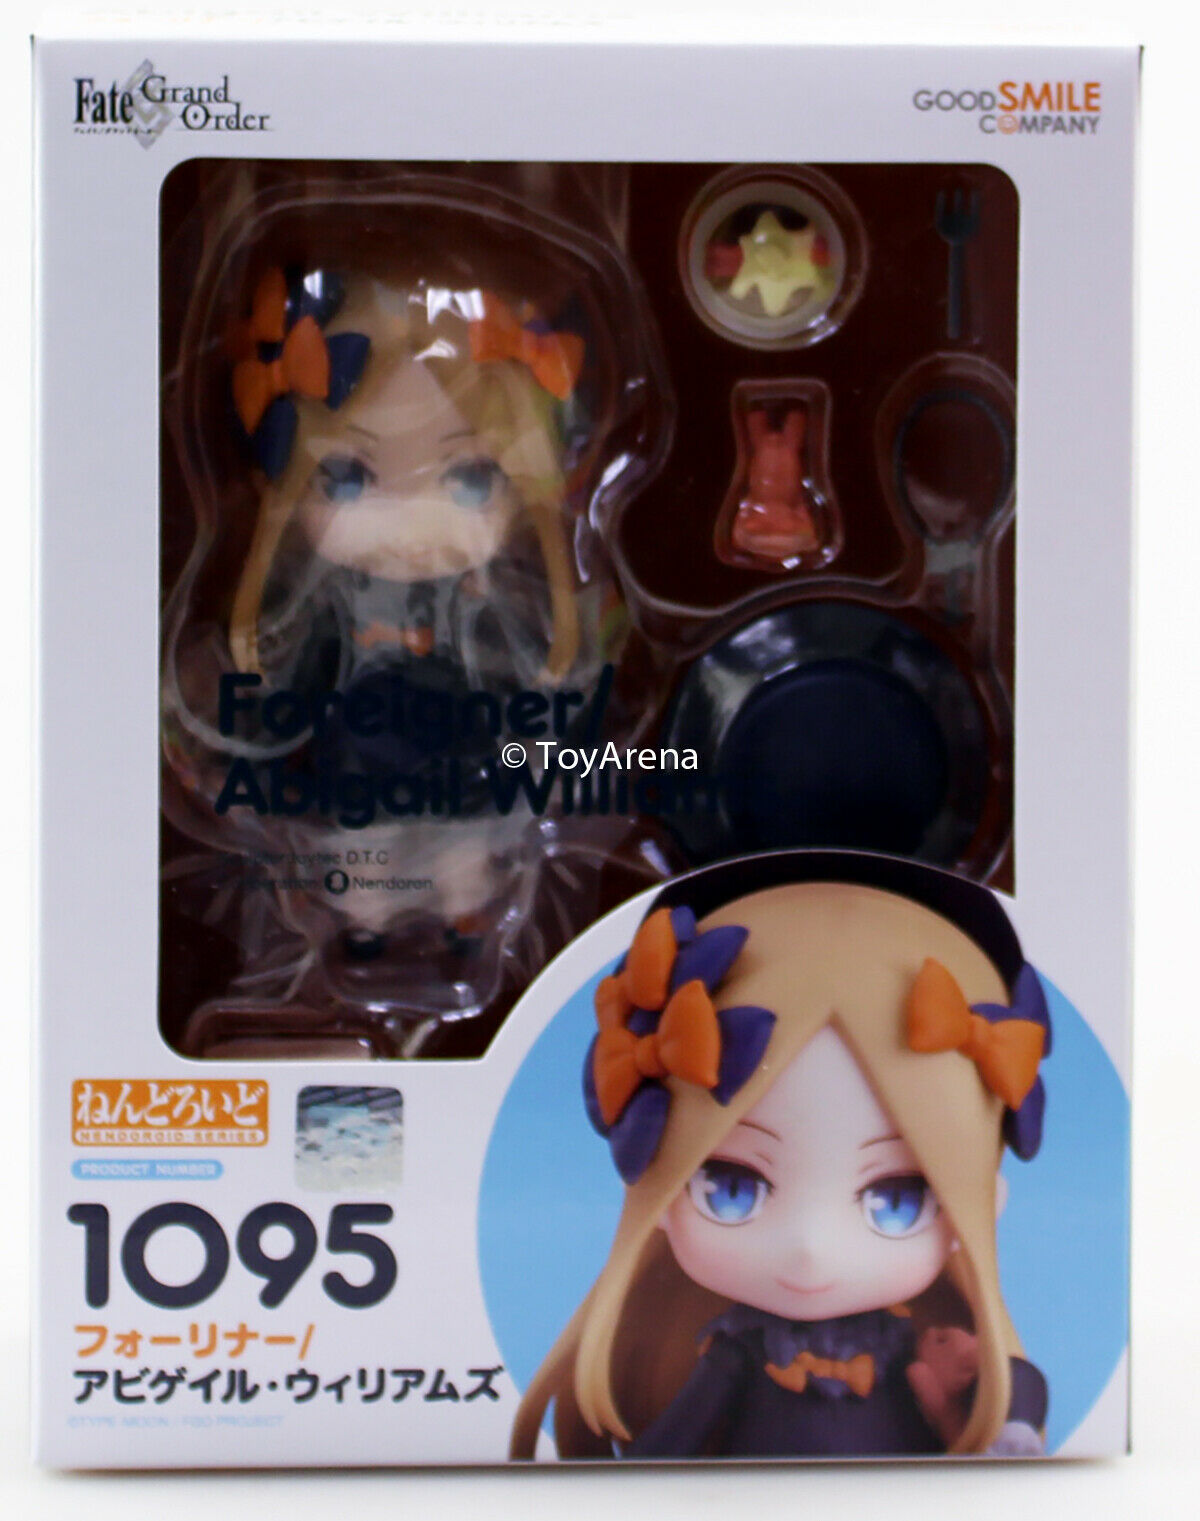 Nendoroid  1095 Foreigner  Agreeail Williams (Cthulu) Fate  Gre Order Authentic